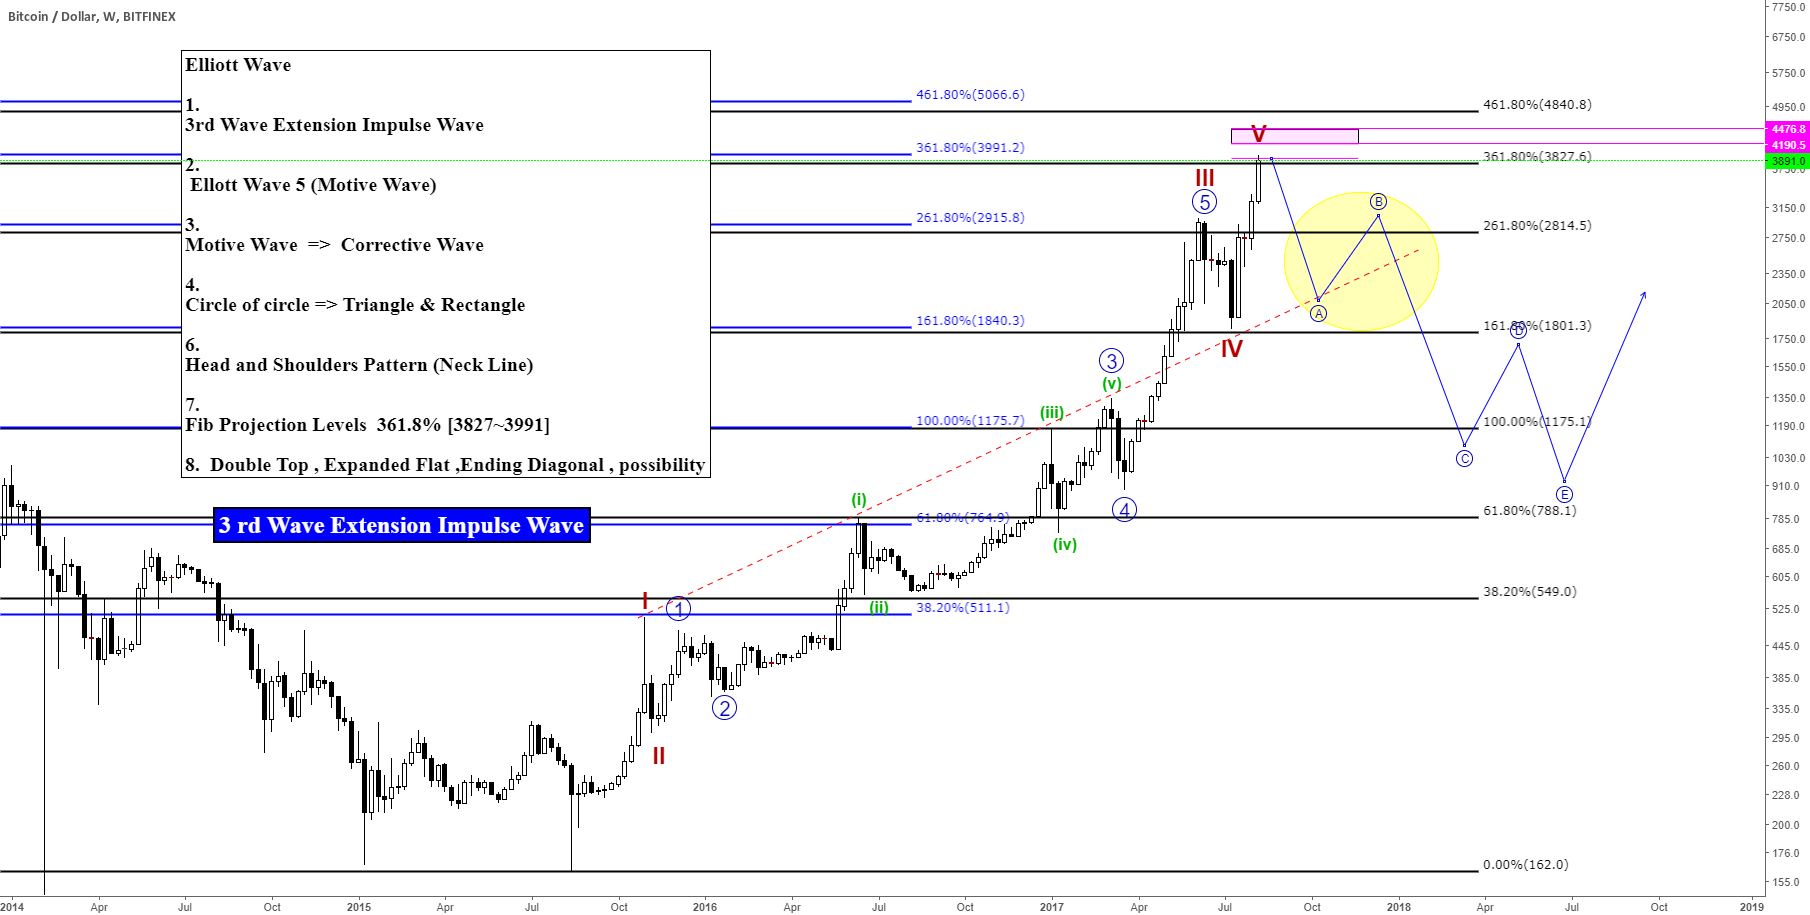 BTCUSDT/BTCUSD/ Bitcoin Elliott Wave 3rd Wave Extension Impulse